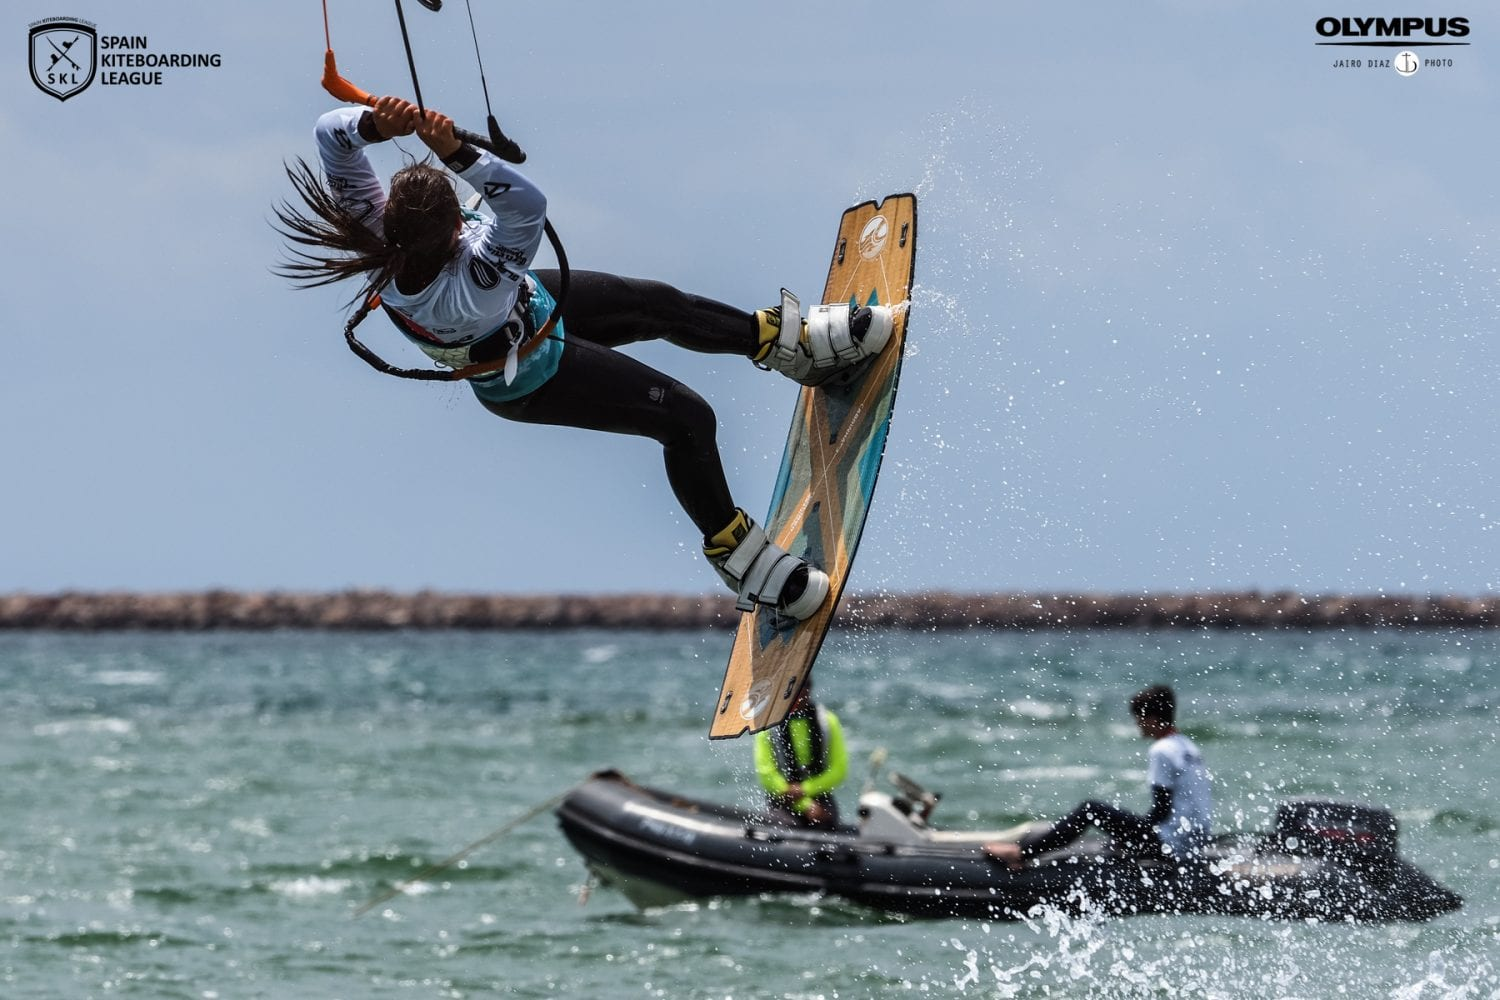 Spain Kiteboarding League